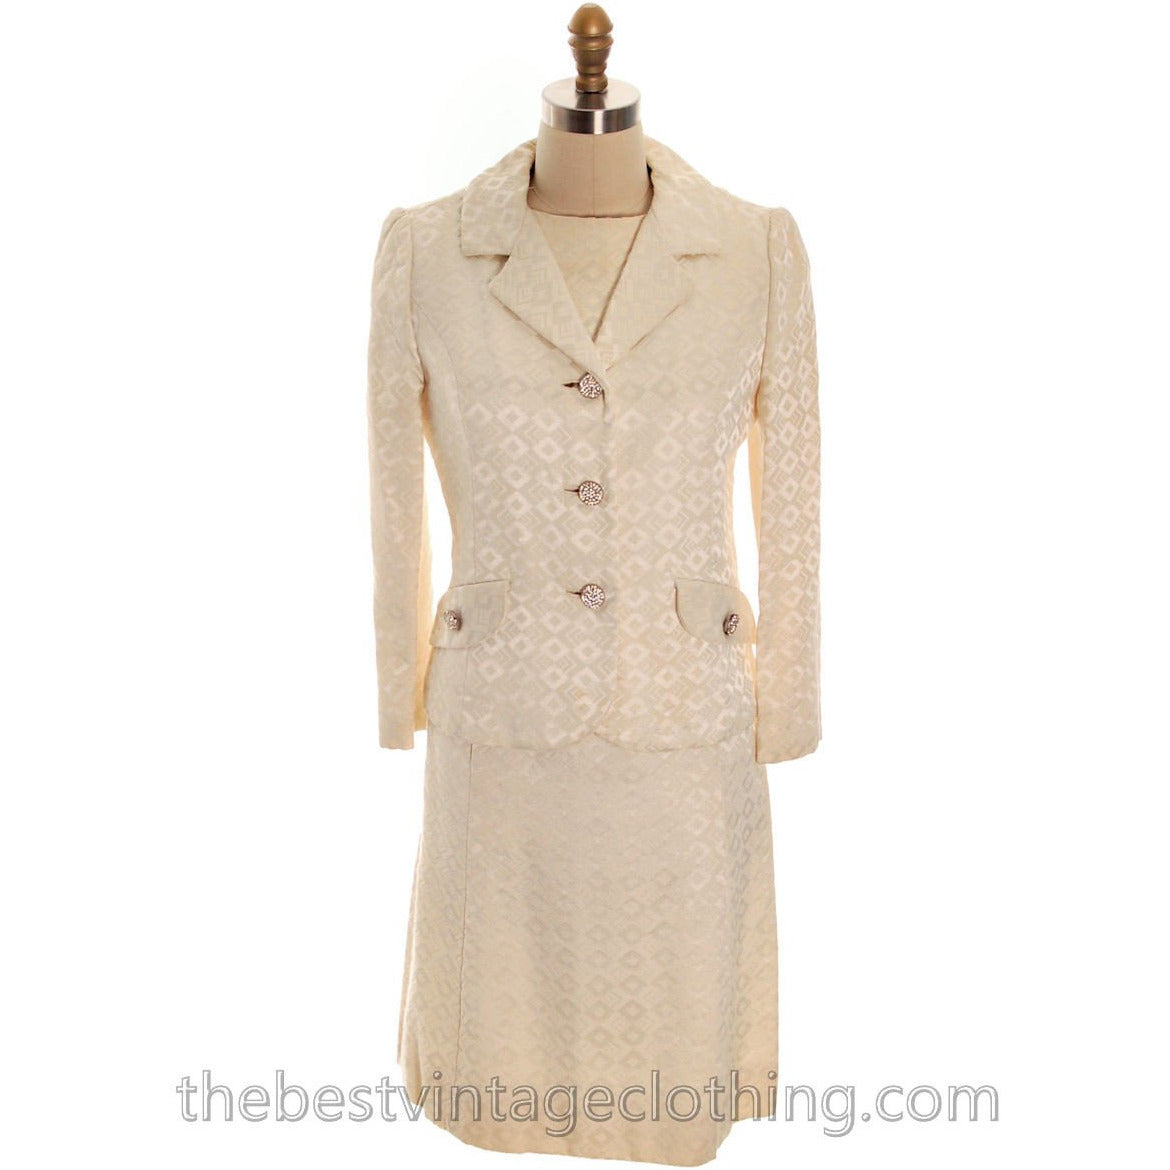 Vintage 1970s Ivory Brocade Suit Dress Lord & Taylor Rhinestone Buttons - The Best Vintage Clothing  - 1